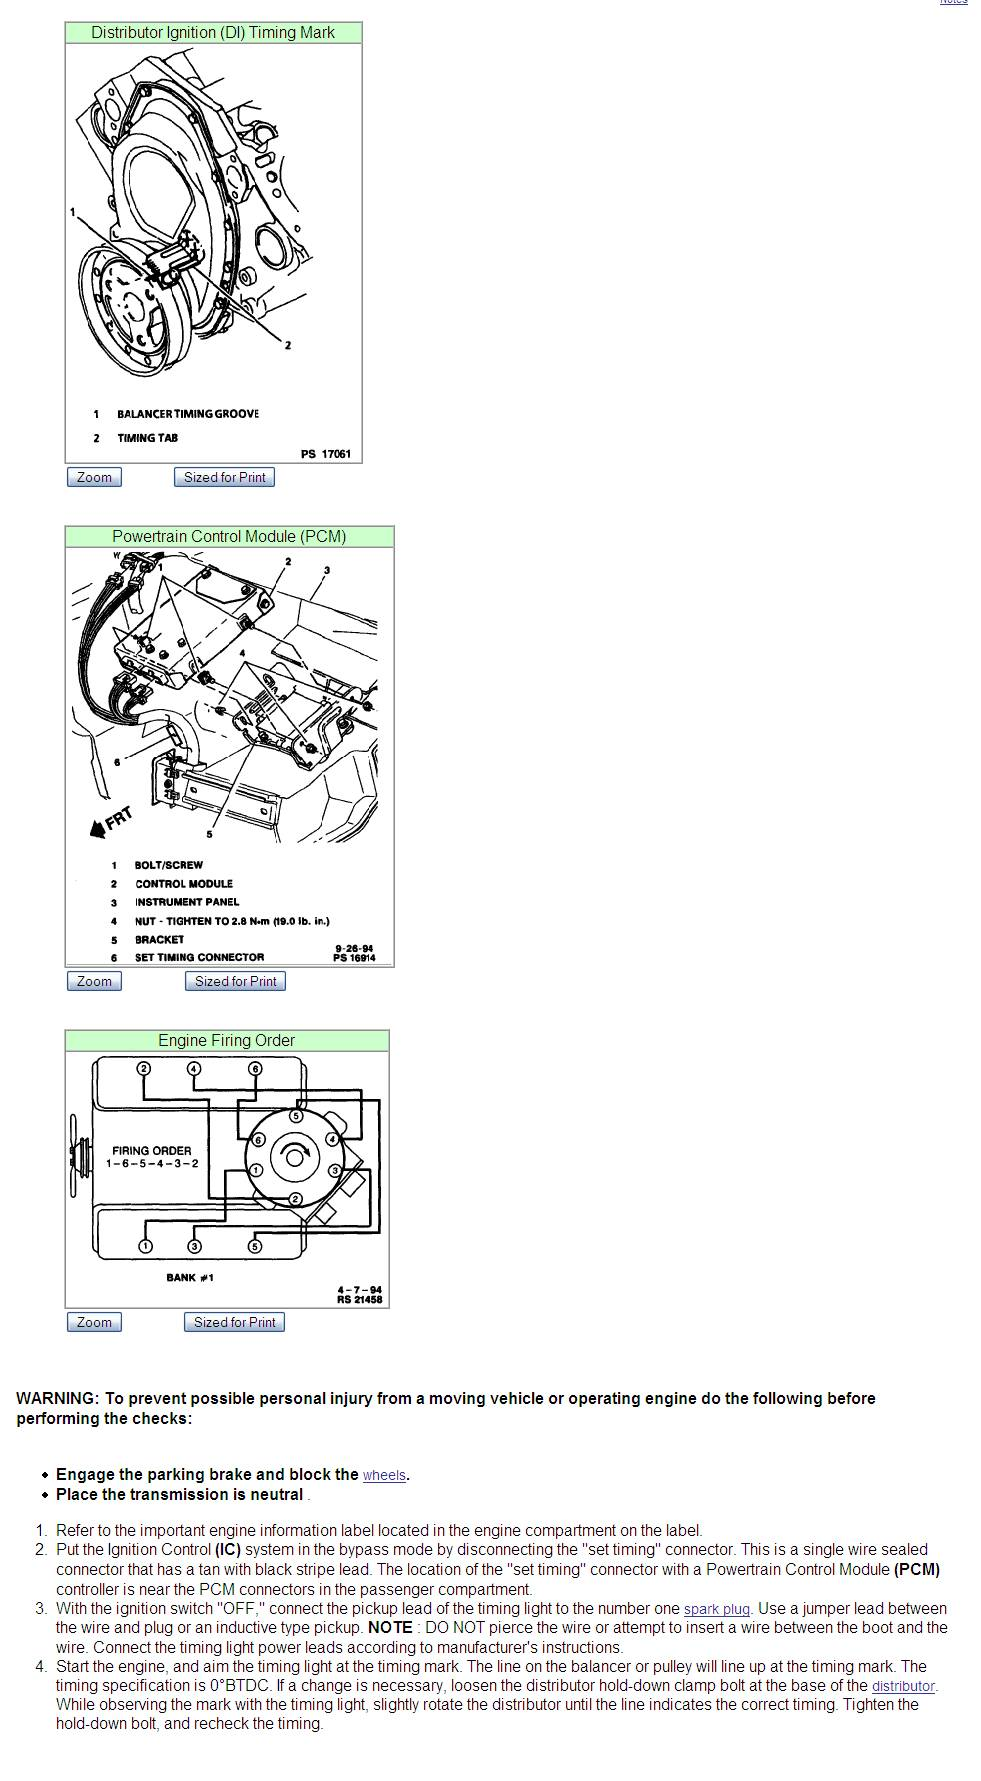 chevy 4.3 l timing marks. Timing Specifications for a 1991 GMC Chevy 4.3 V6  | eHow.com